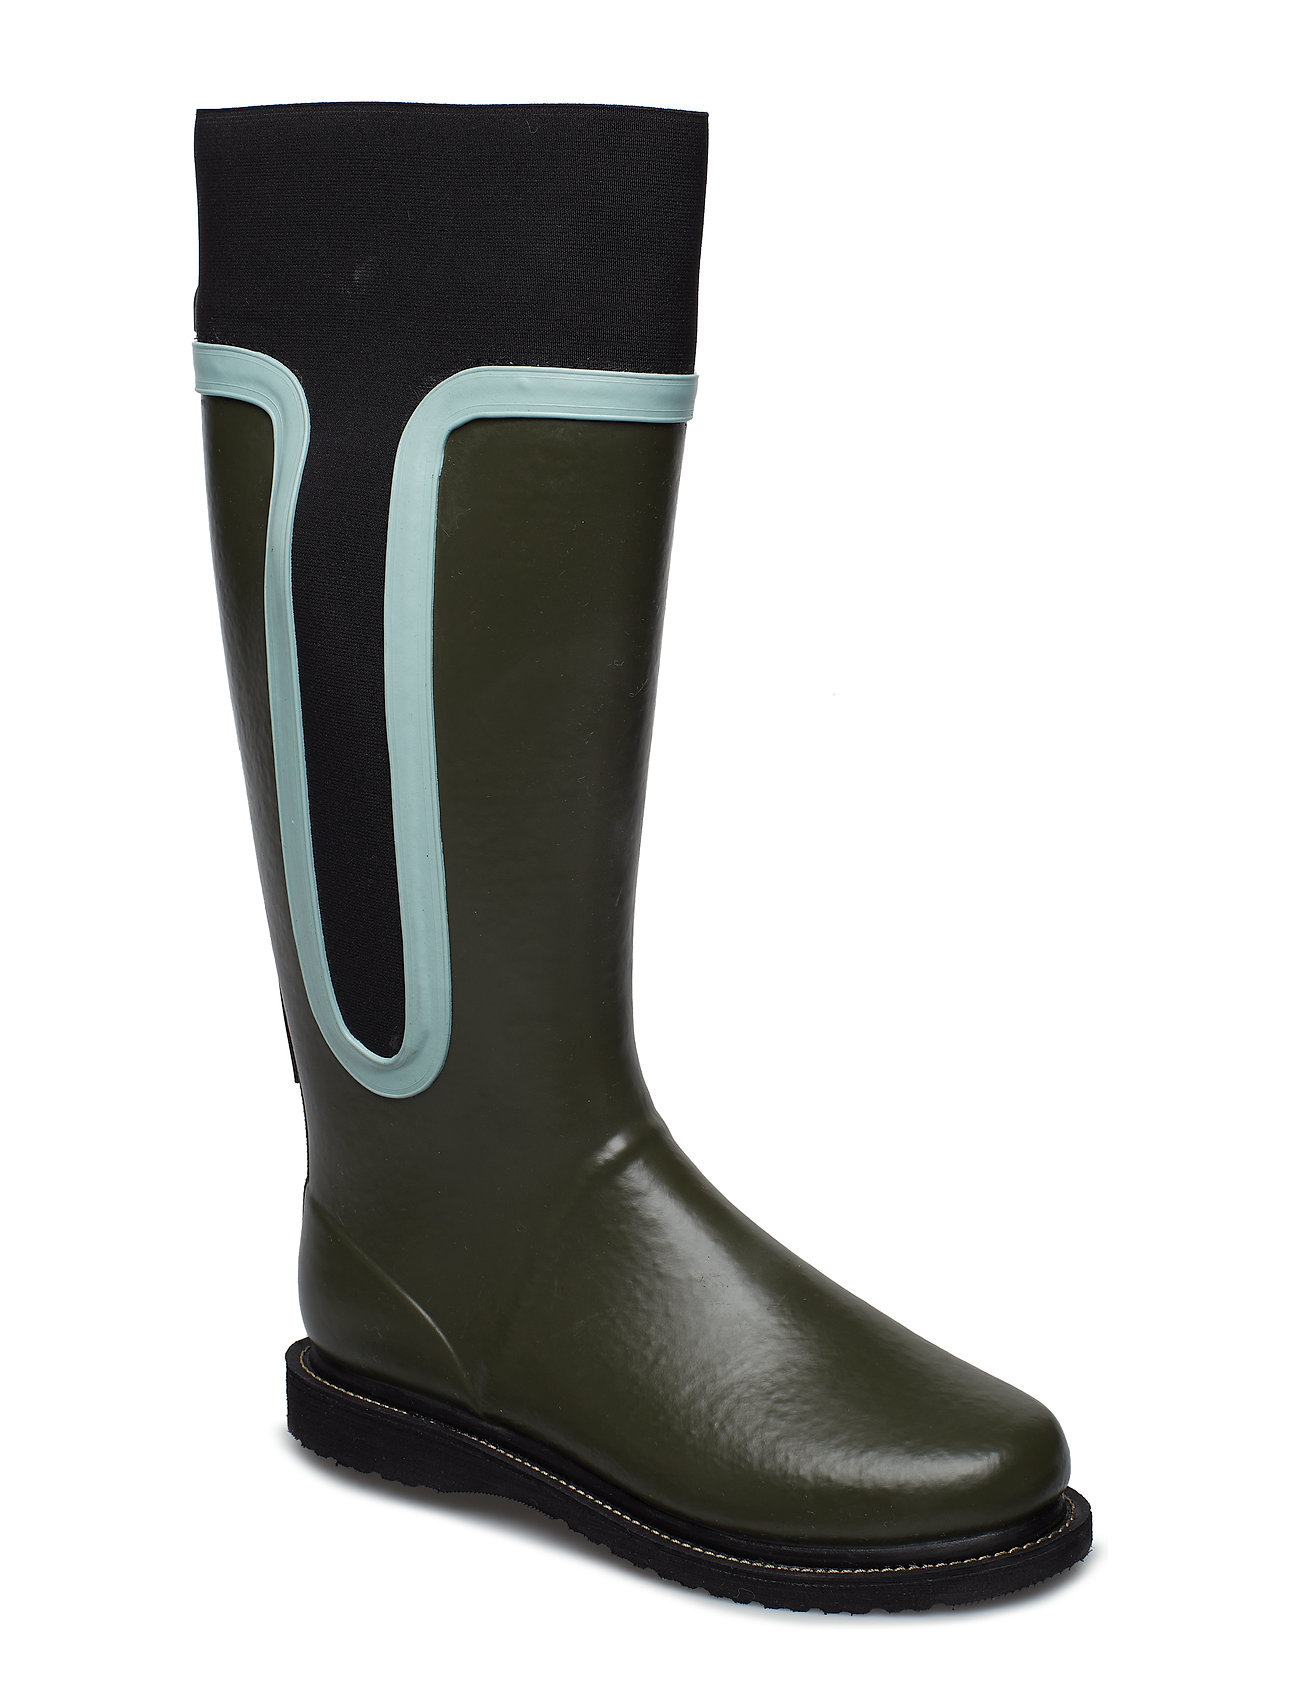 Image of High Rubber Boot Gummistøvler Sko Sort Ilse Jacobsen (3091994371)